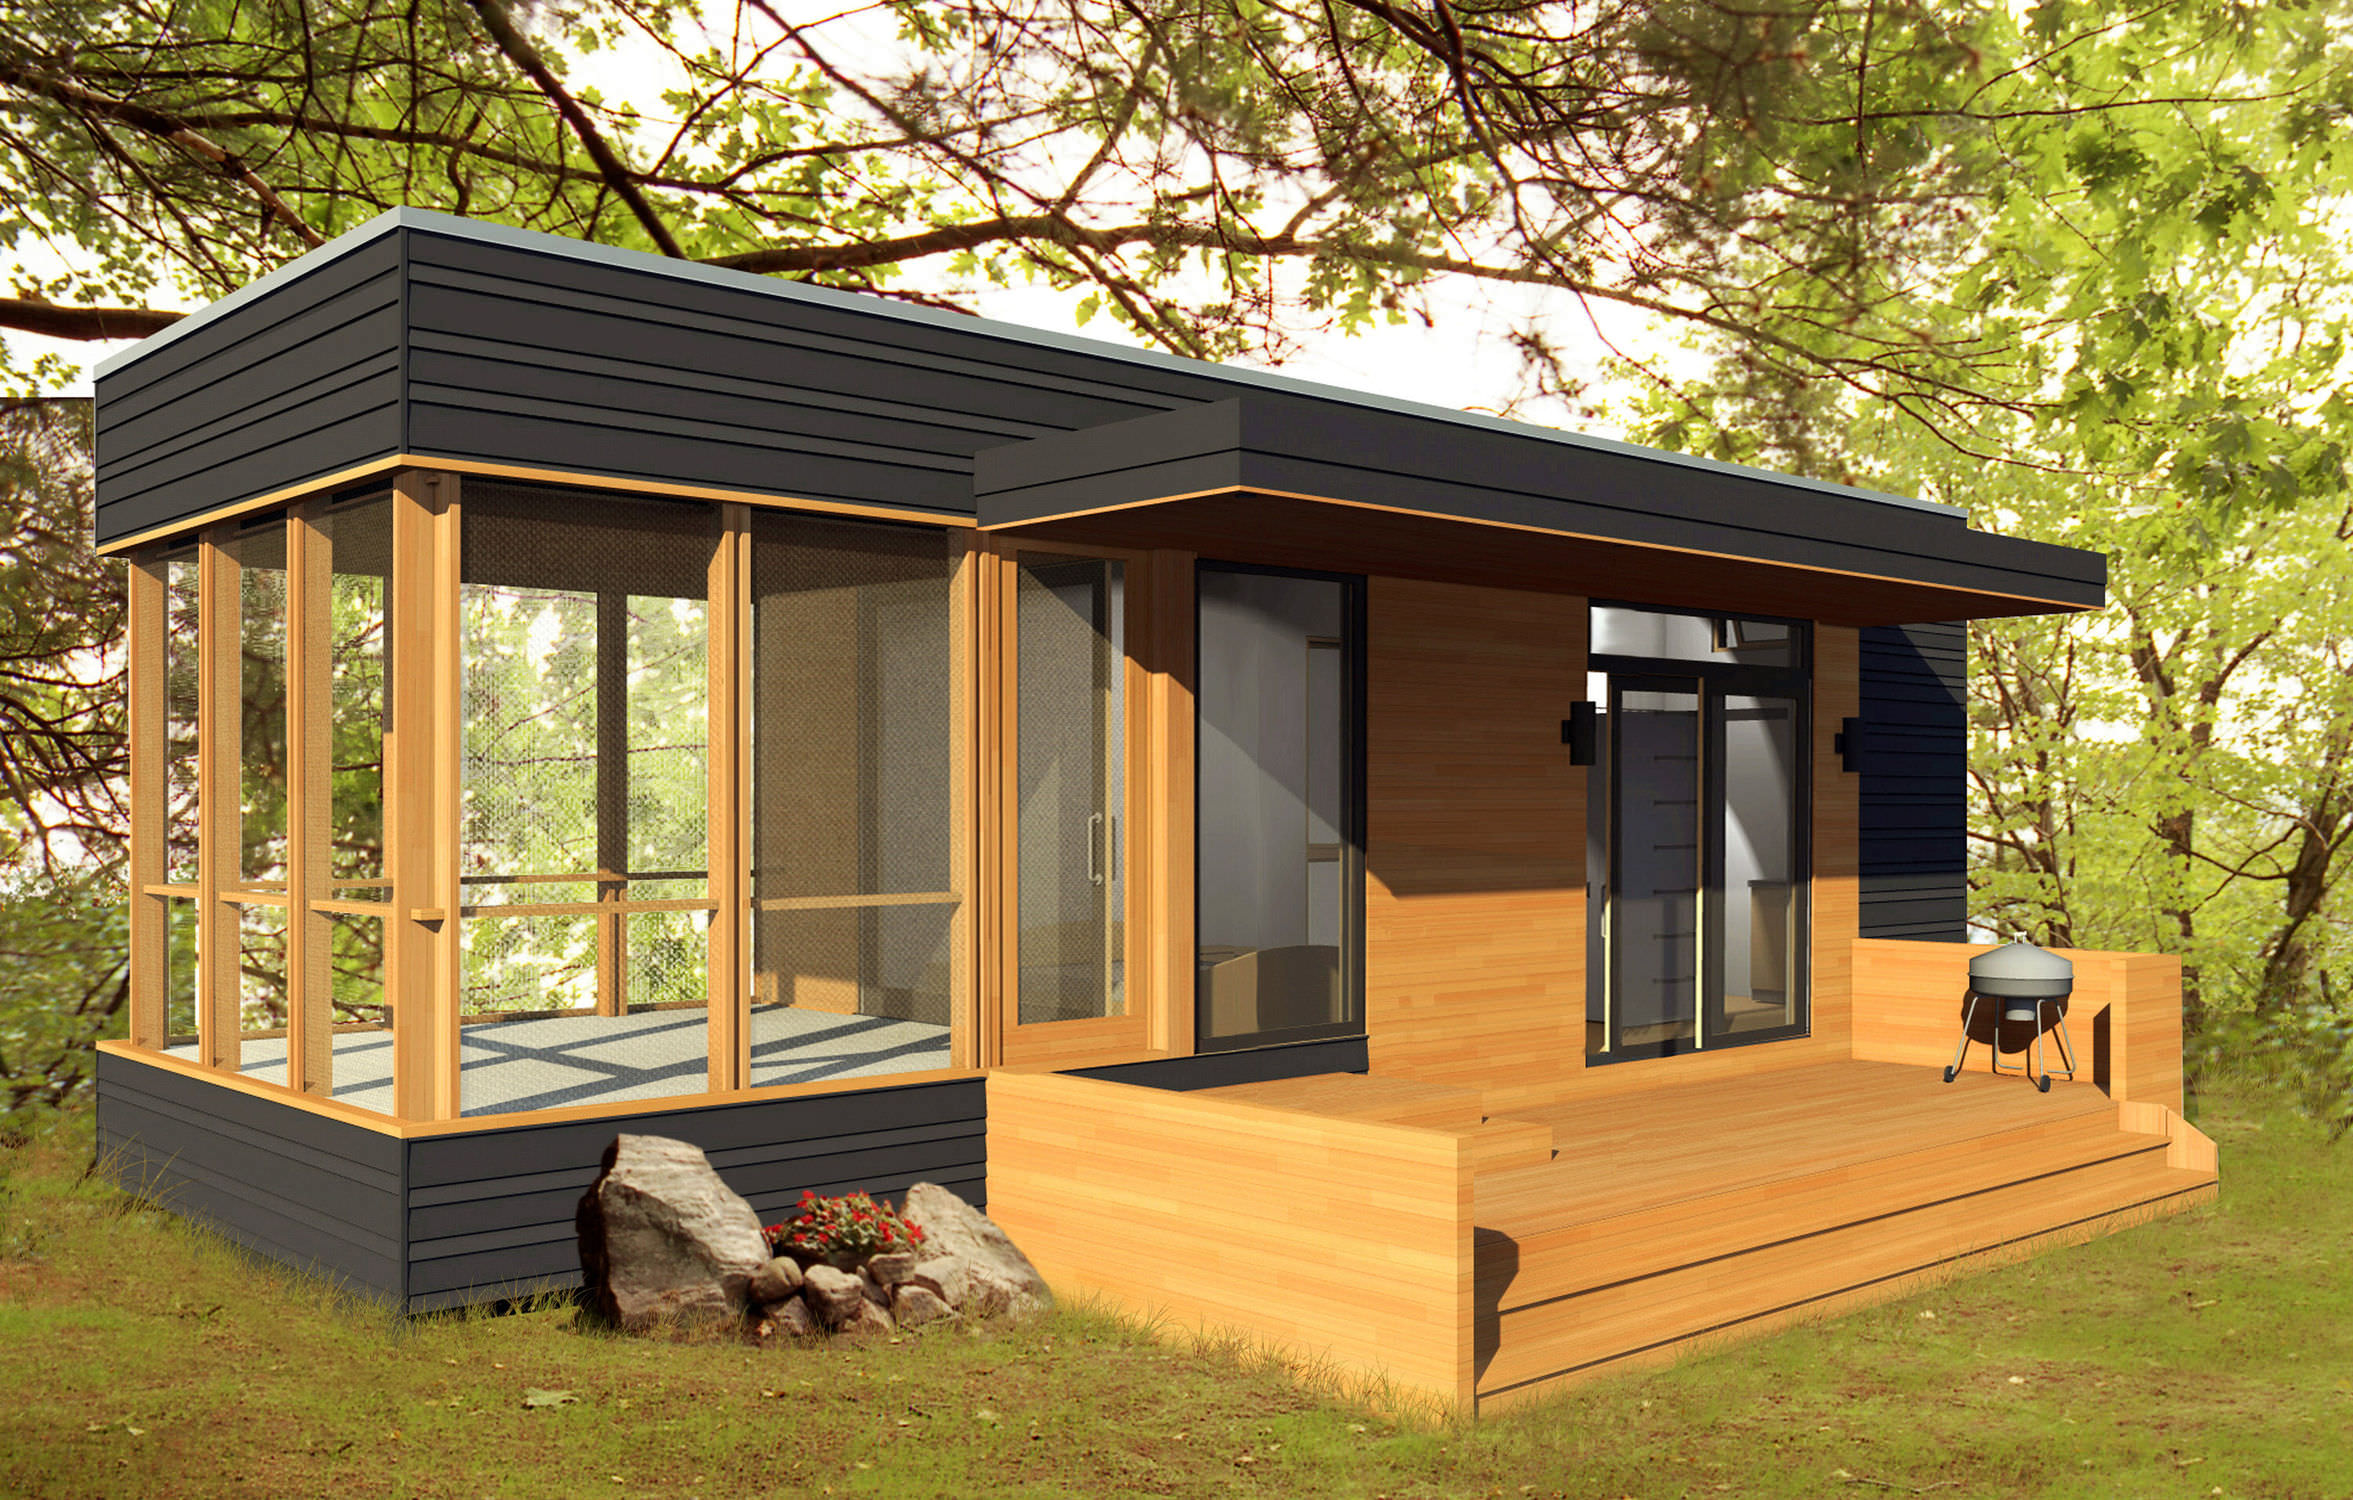 Curtis Emmet | Micro Home Designs – HomeStyle Digest